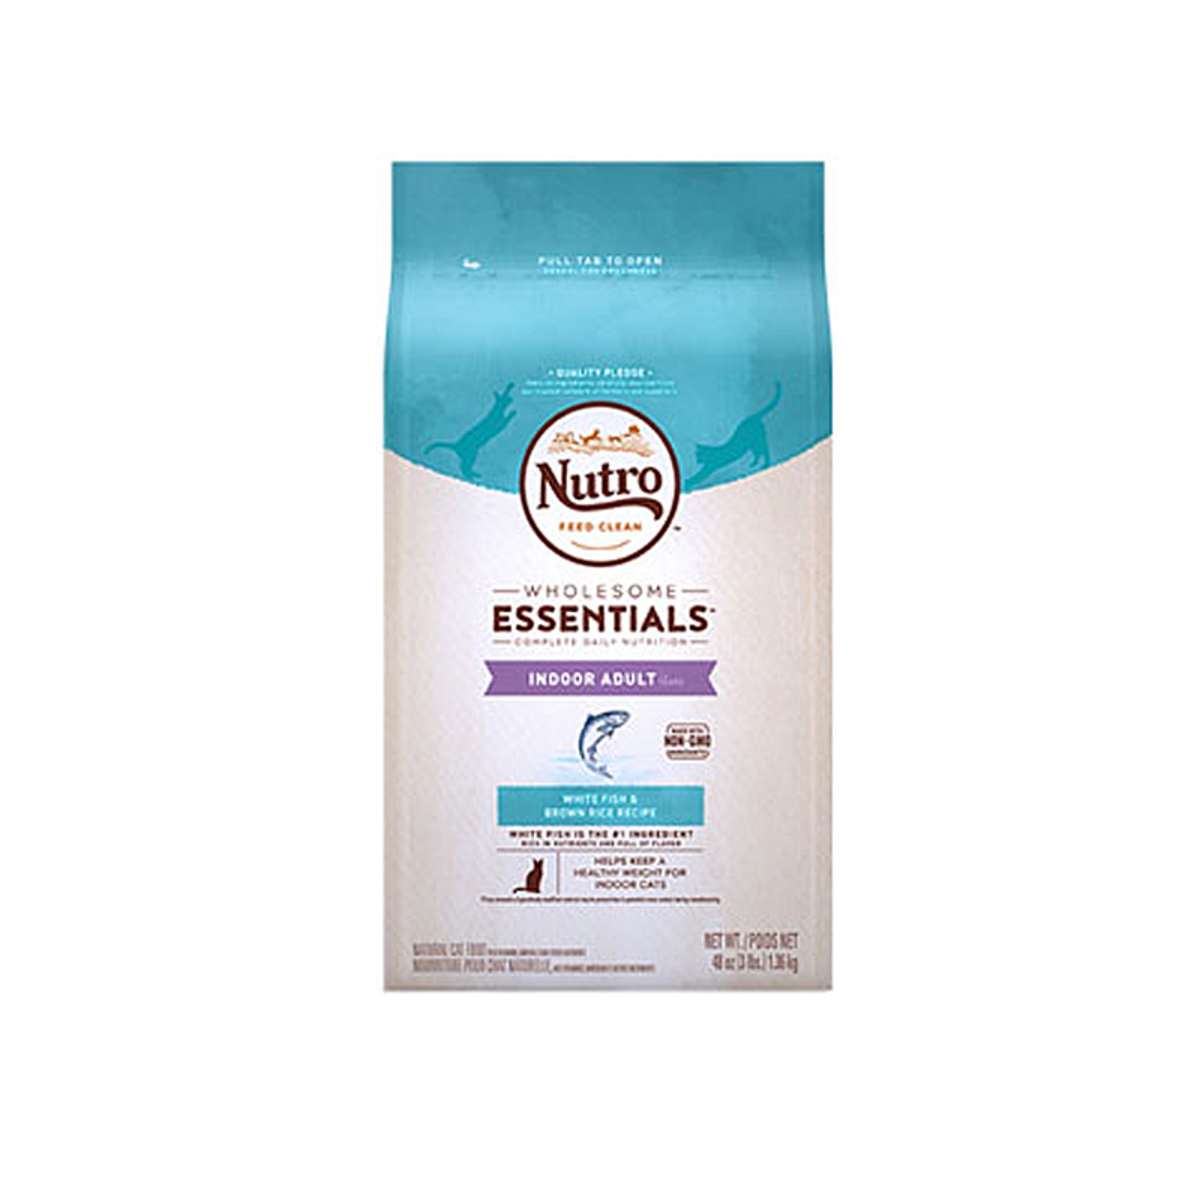 Nutro - Indoor Fish & Whole Brown Rice - 14lb